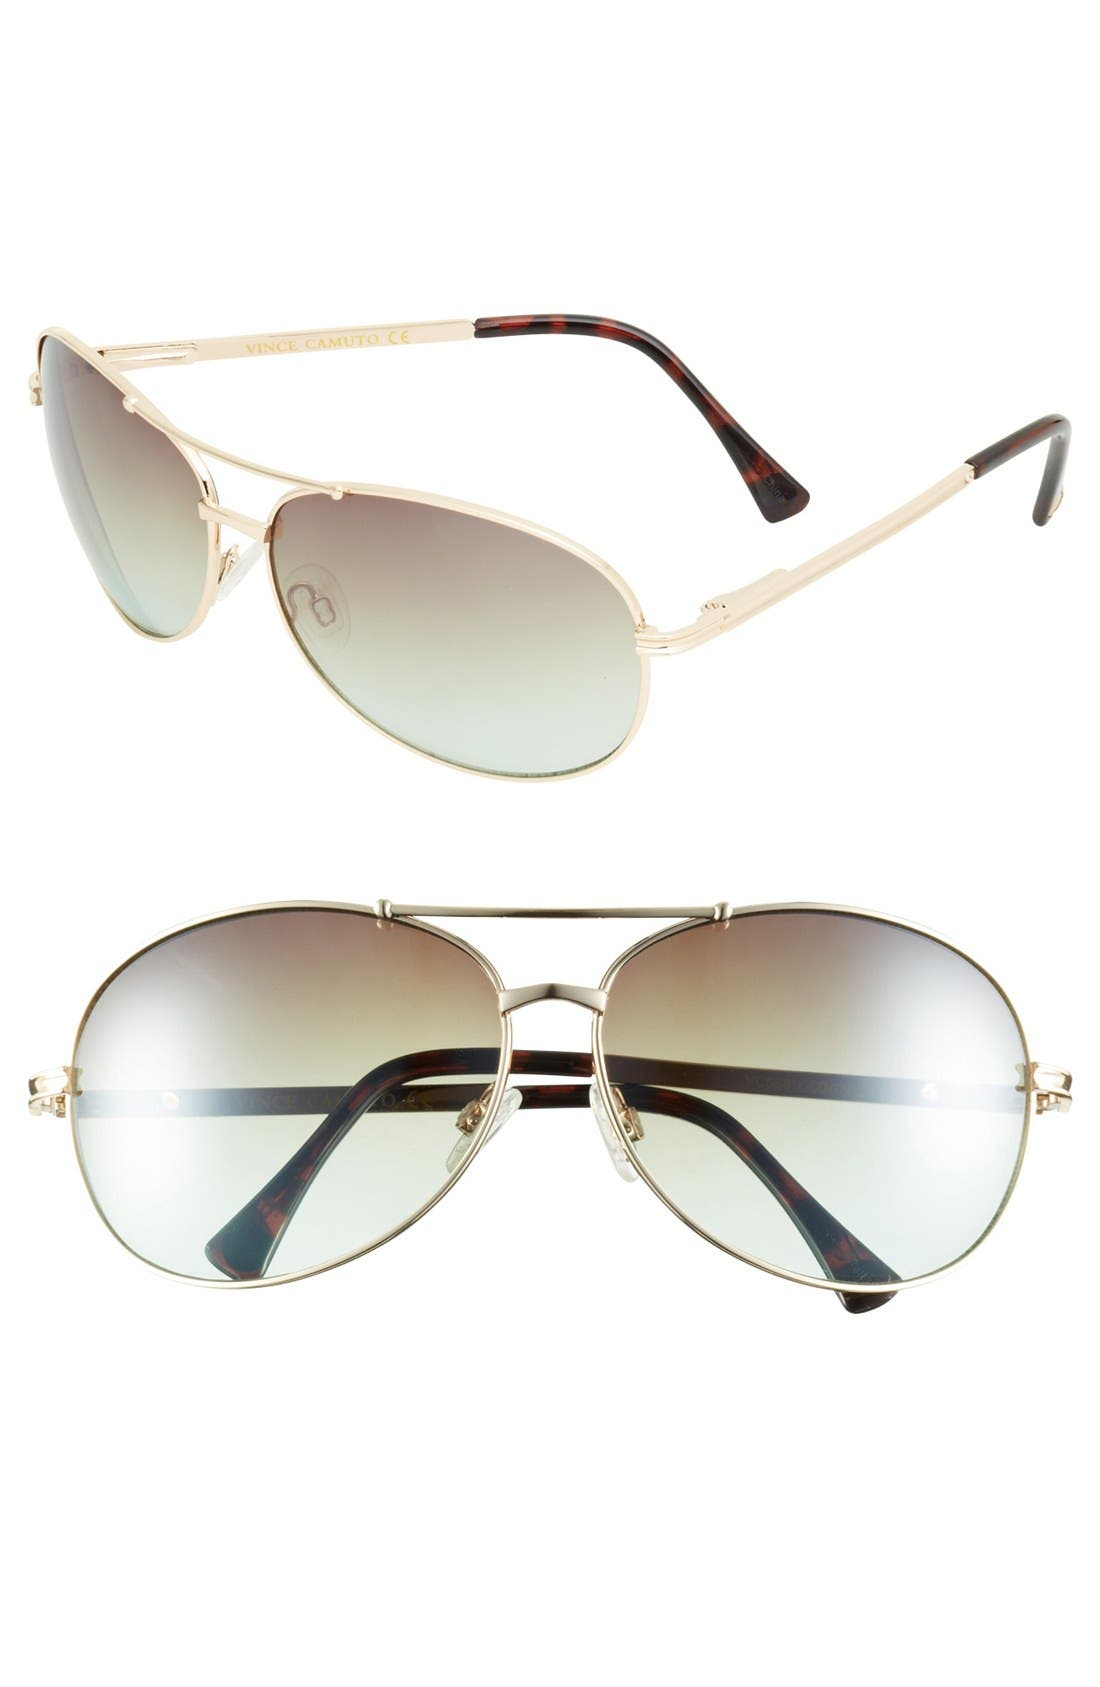 Main Image - Vince Camuto 65mm Aviator Sunglasses